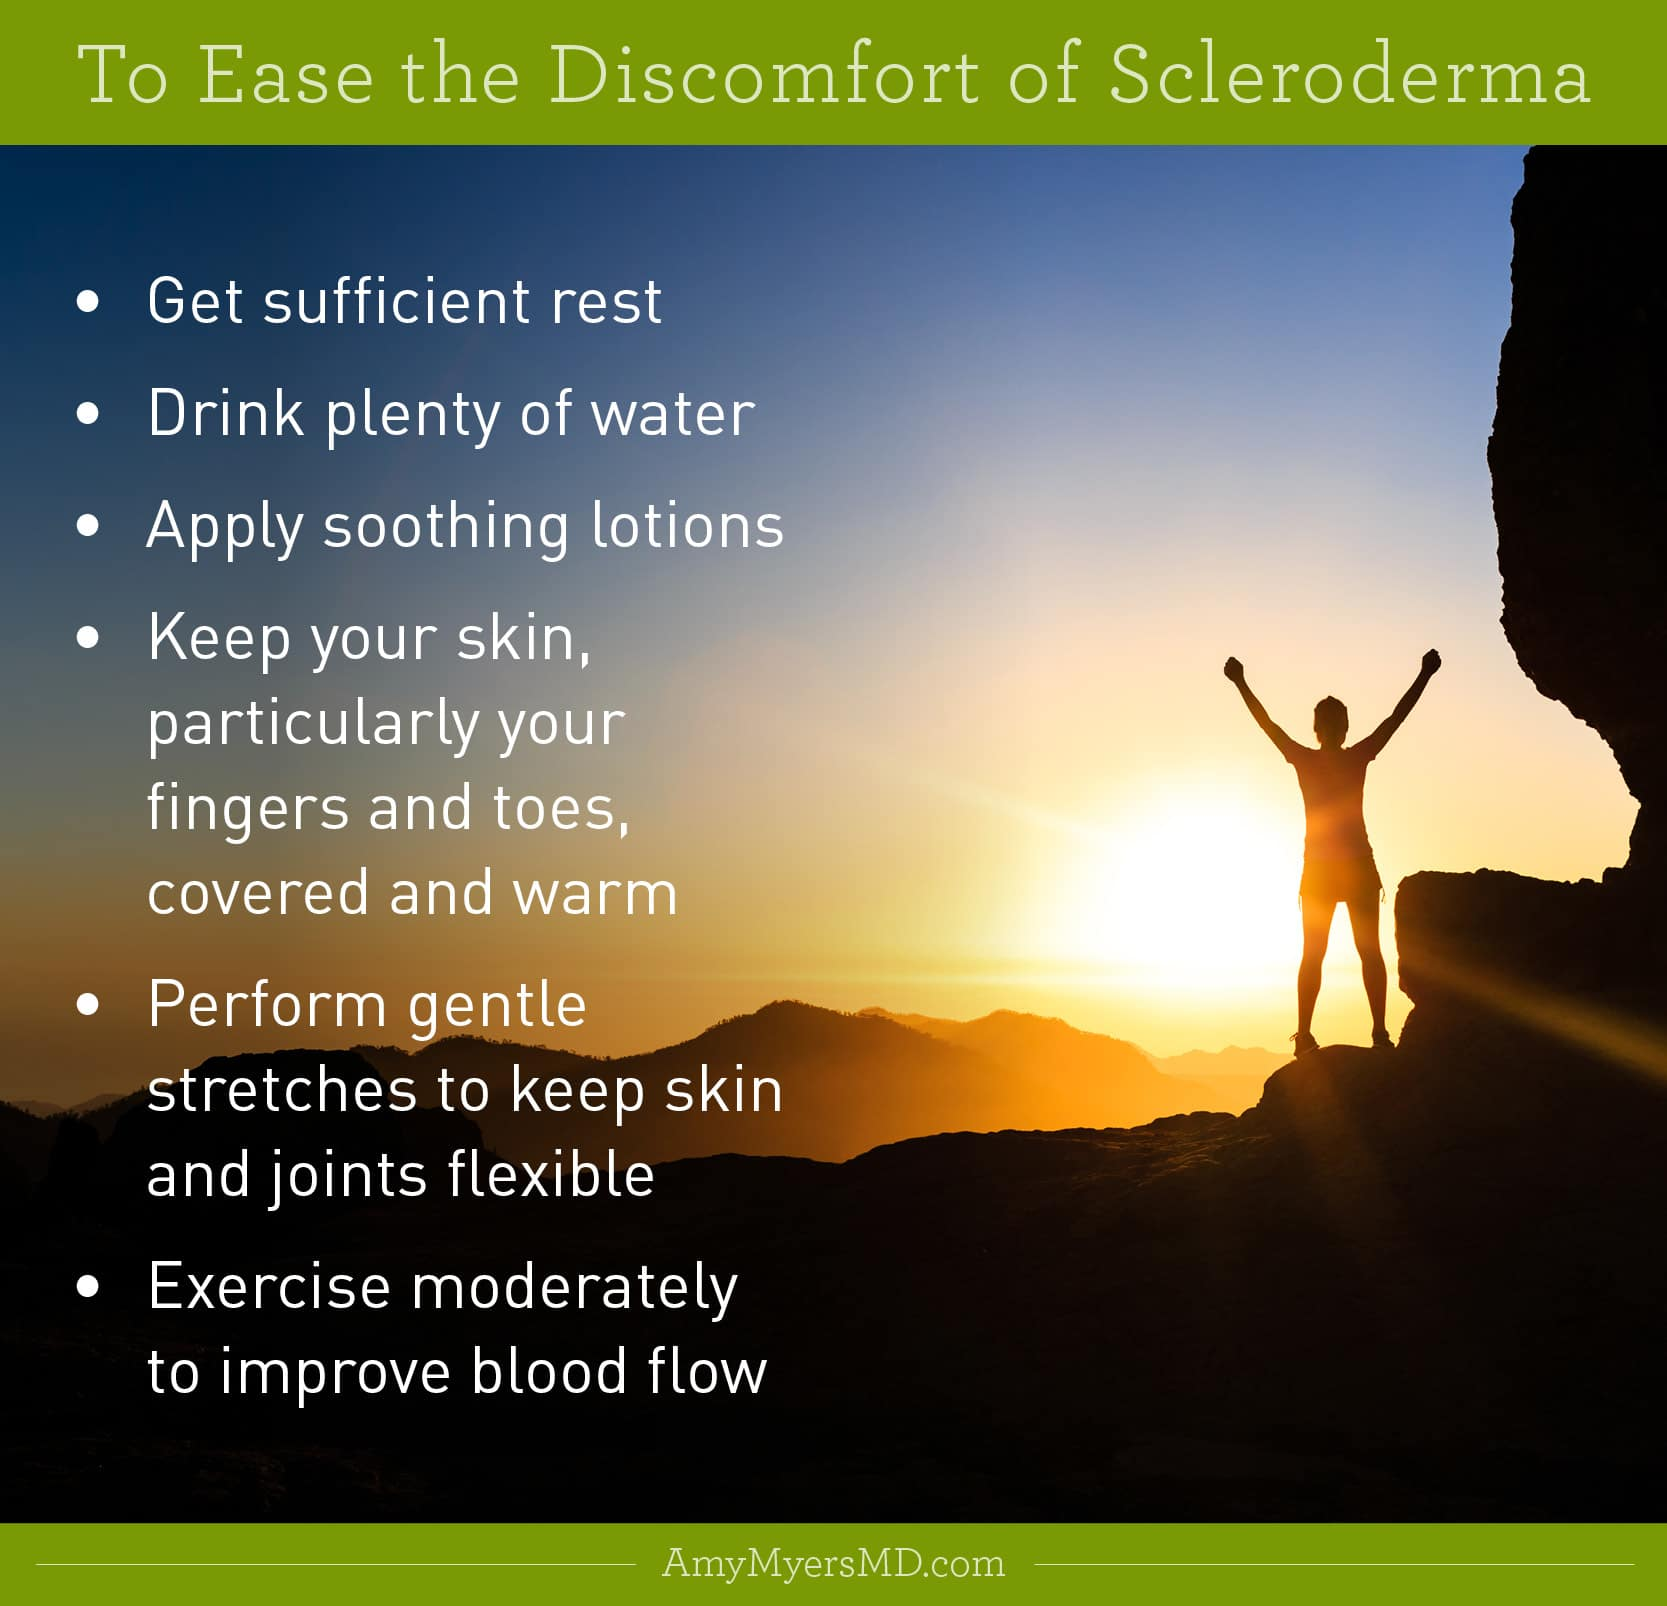 The Natural Way to Reverse Scleroderma - Infographic - Amy Myers MD